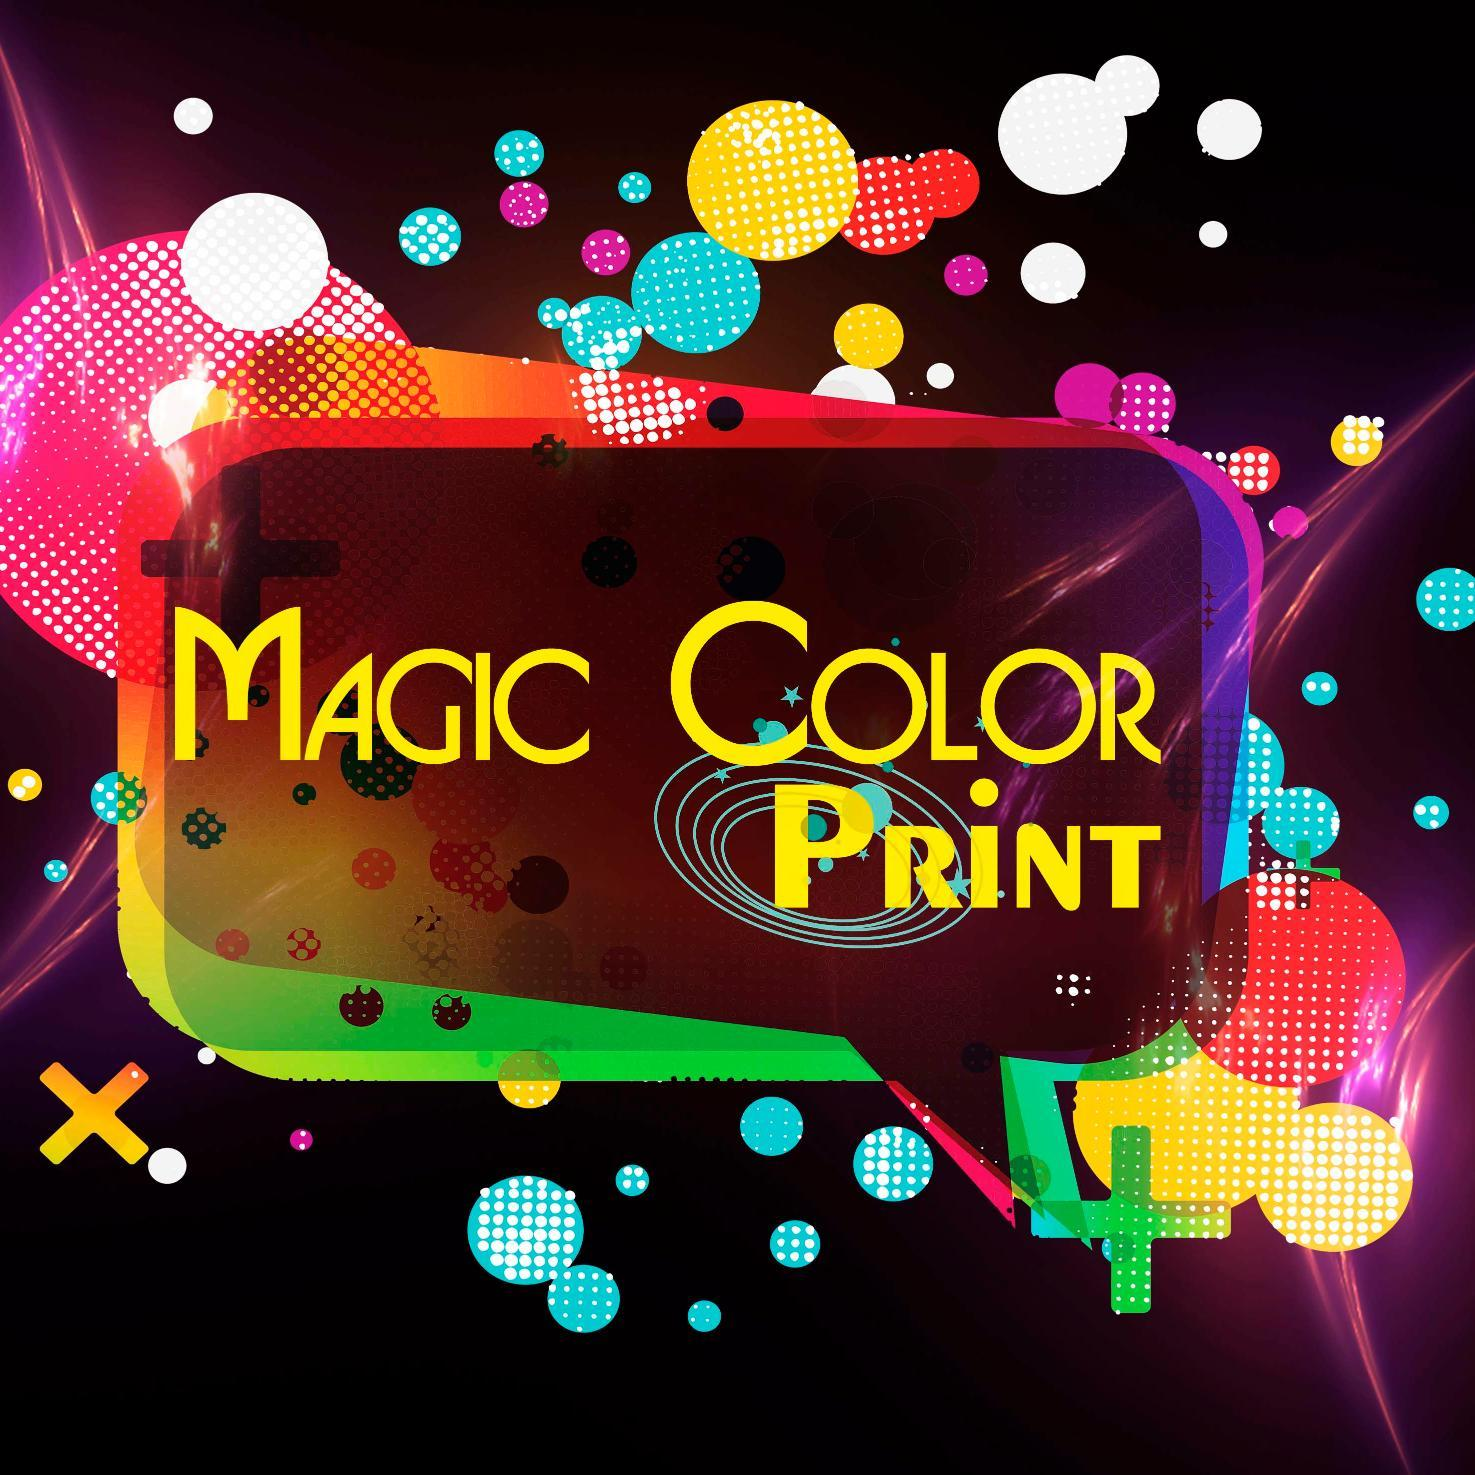 magic color print